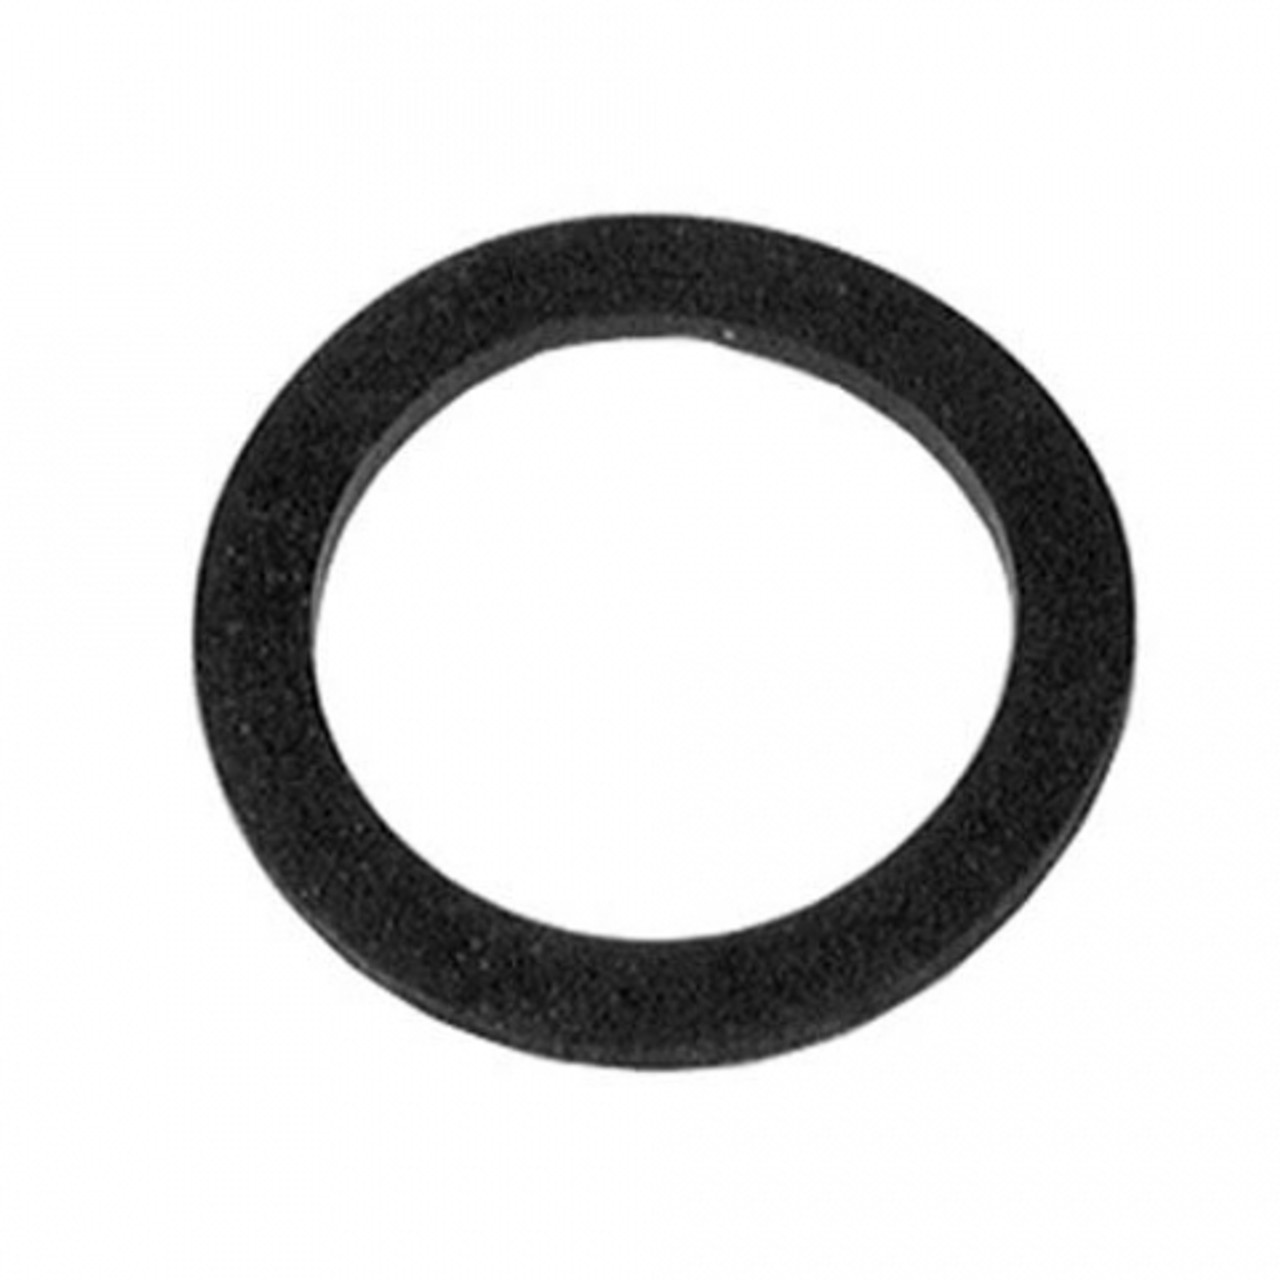 Hatco - Rubber Washer - 05-30-009C